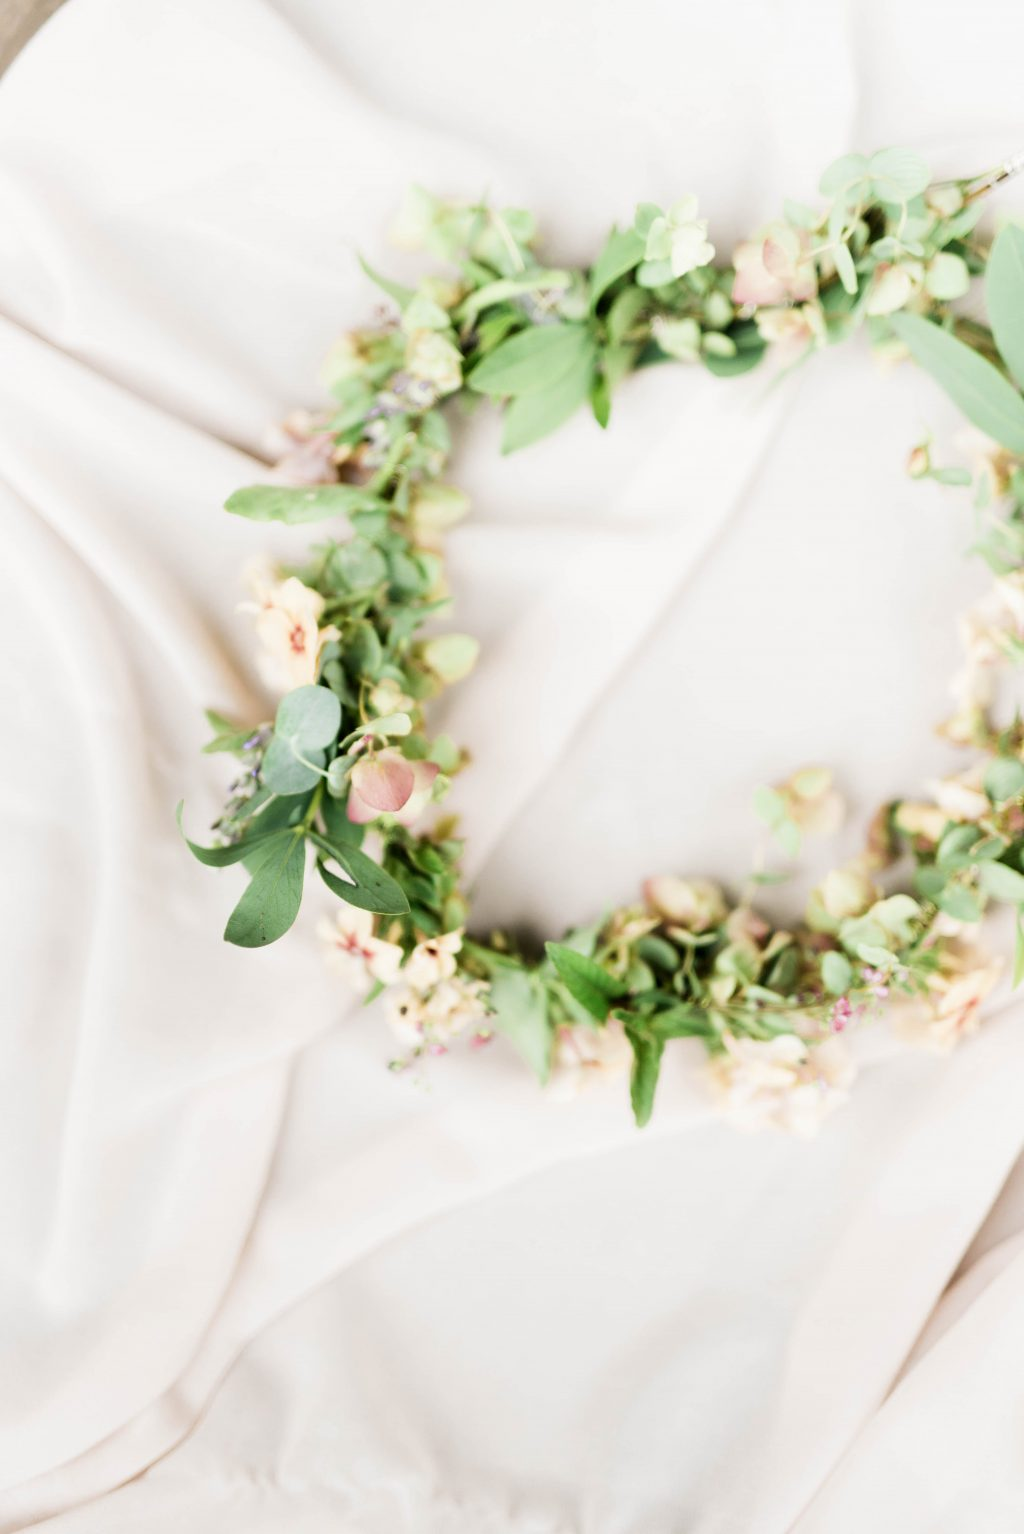 awbury-arboretum-wedding-DIY-boho-summer-haley-richter-photography-005